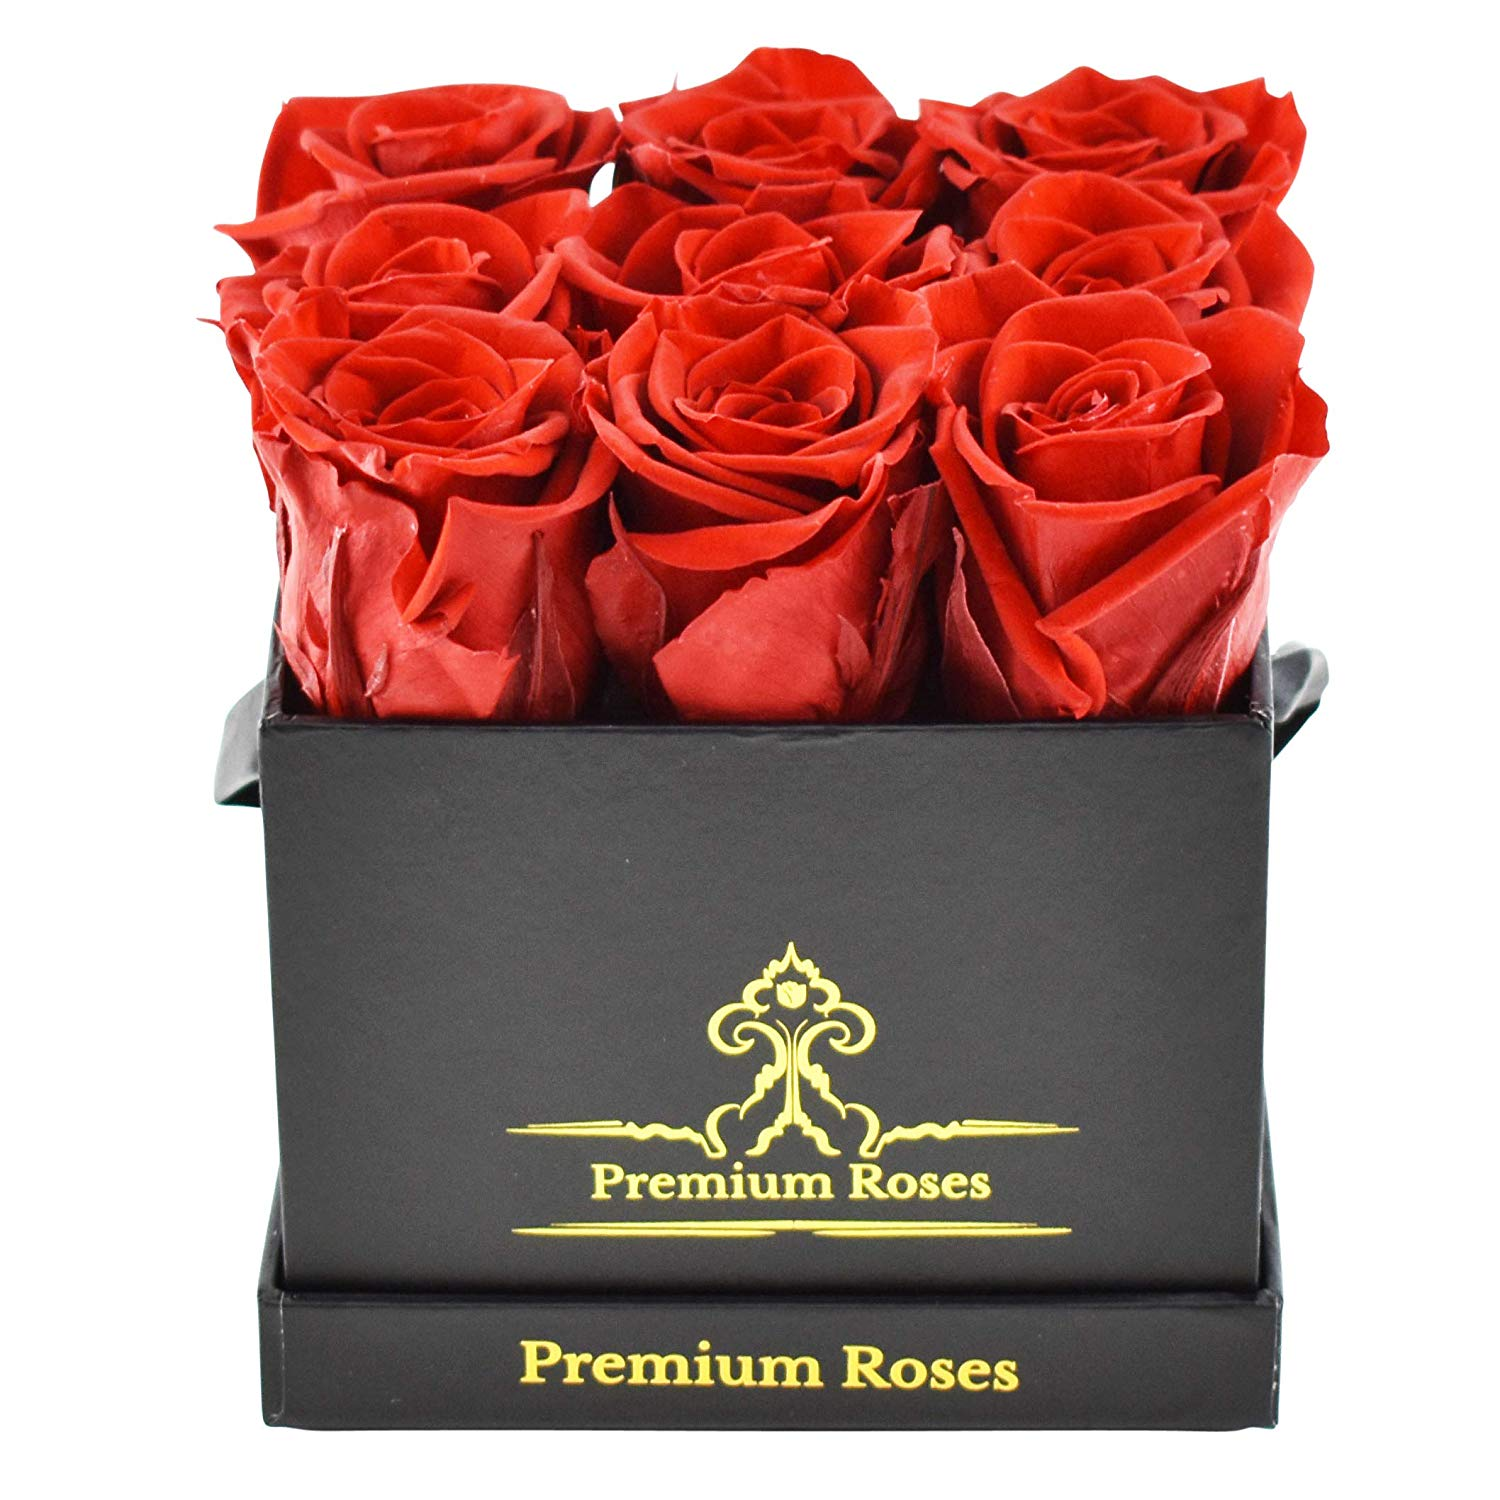 Premium Roses Preserved Roses in a Box Small